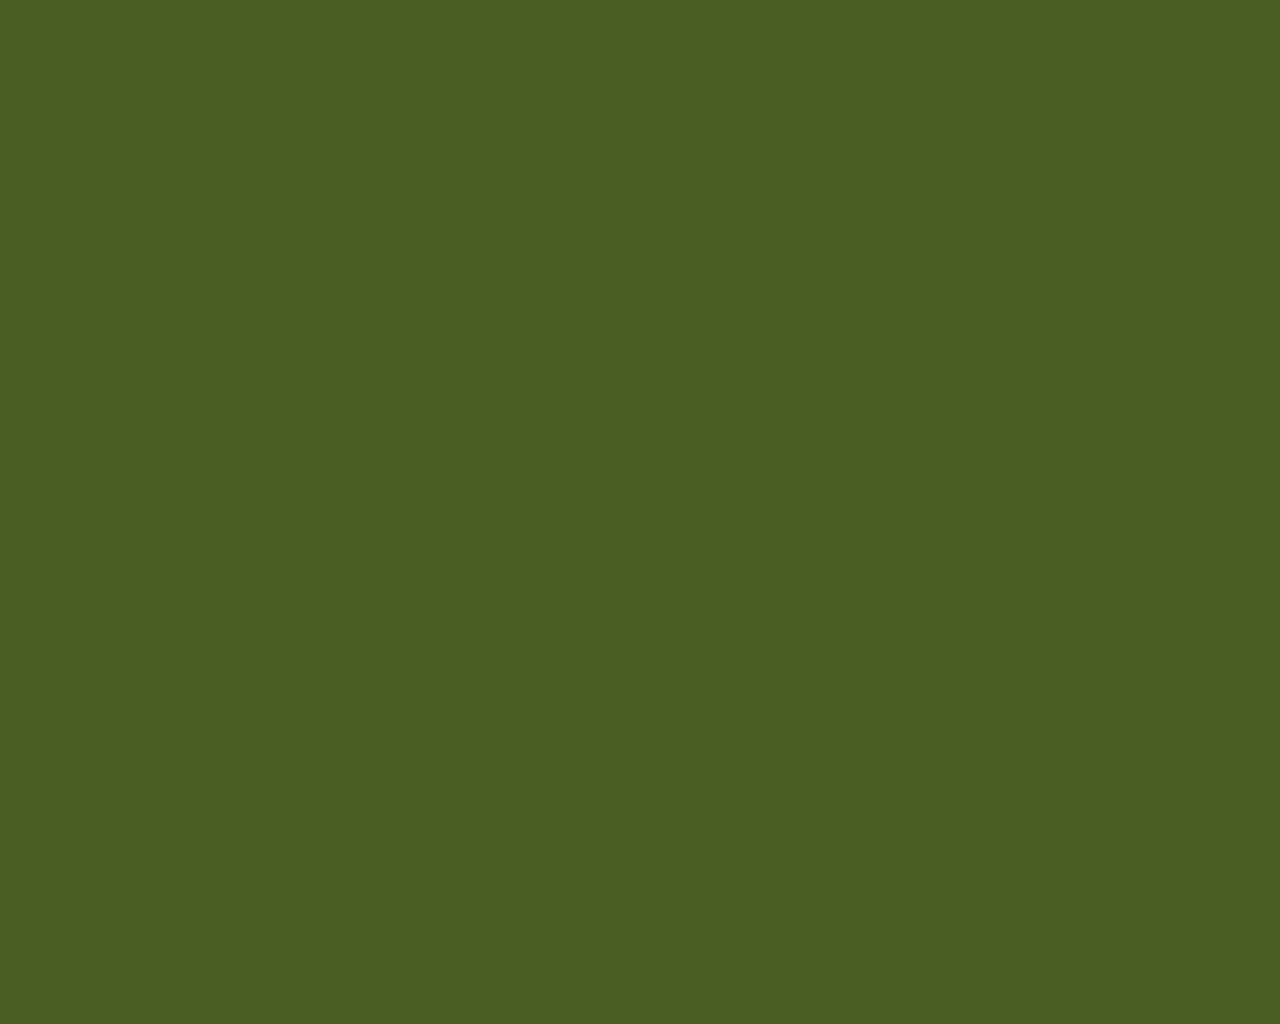 1280x1024 Dark Moss Green Solid Color Background